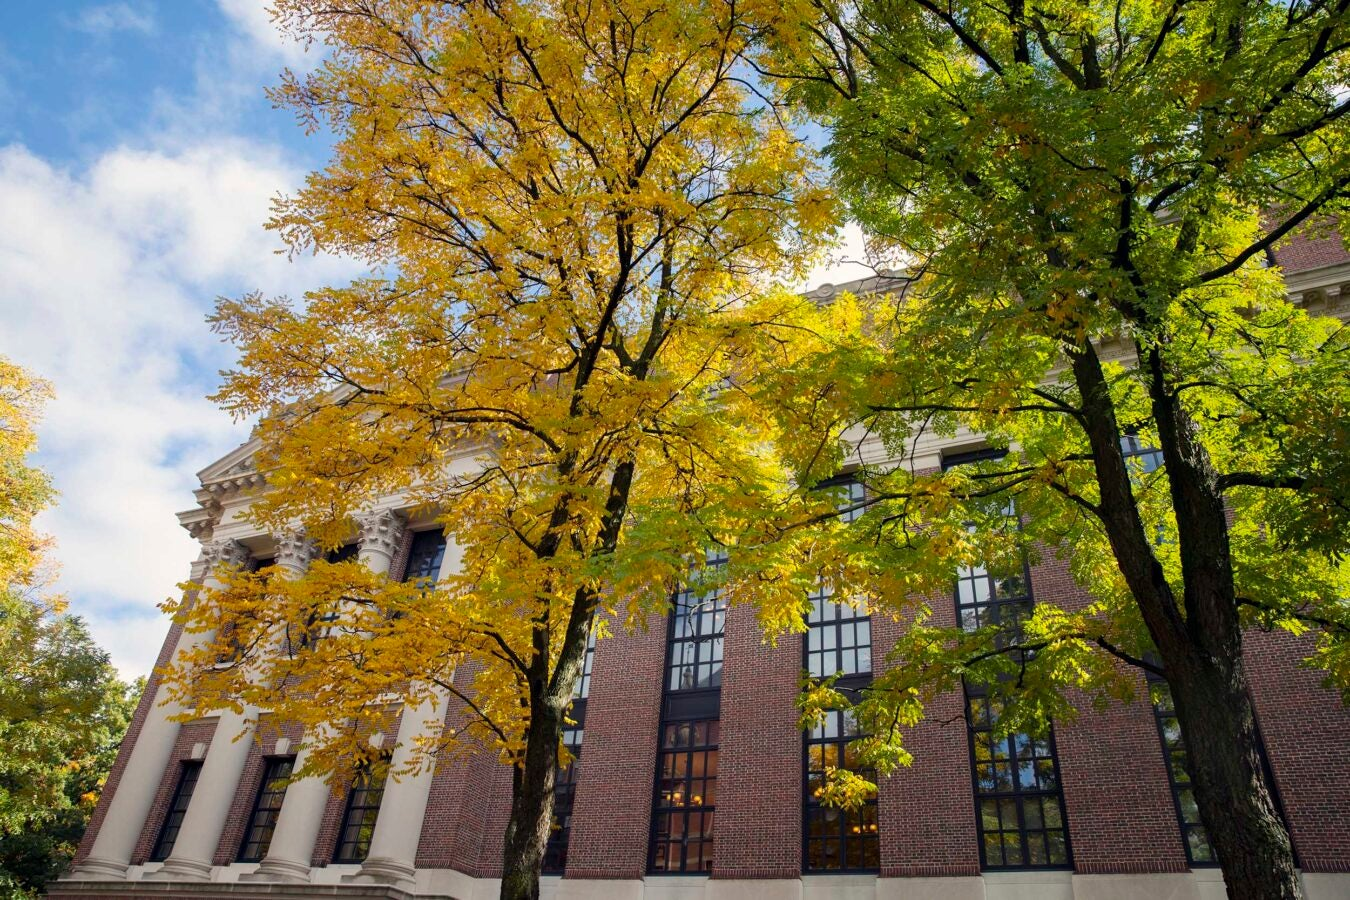 Trees frame The Widener Library in Harvard Yard.